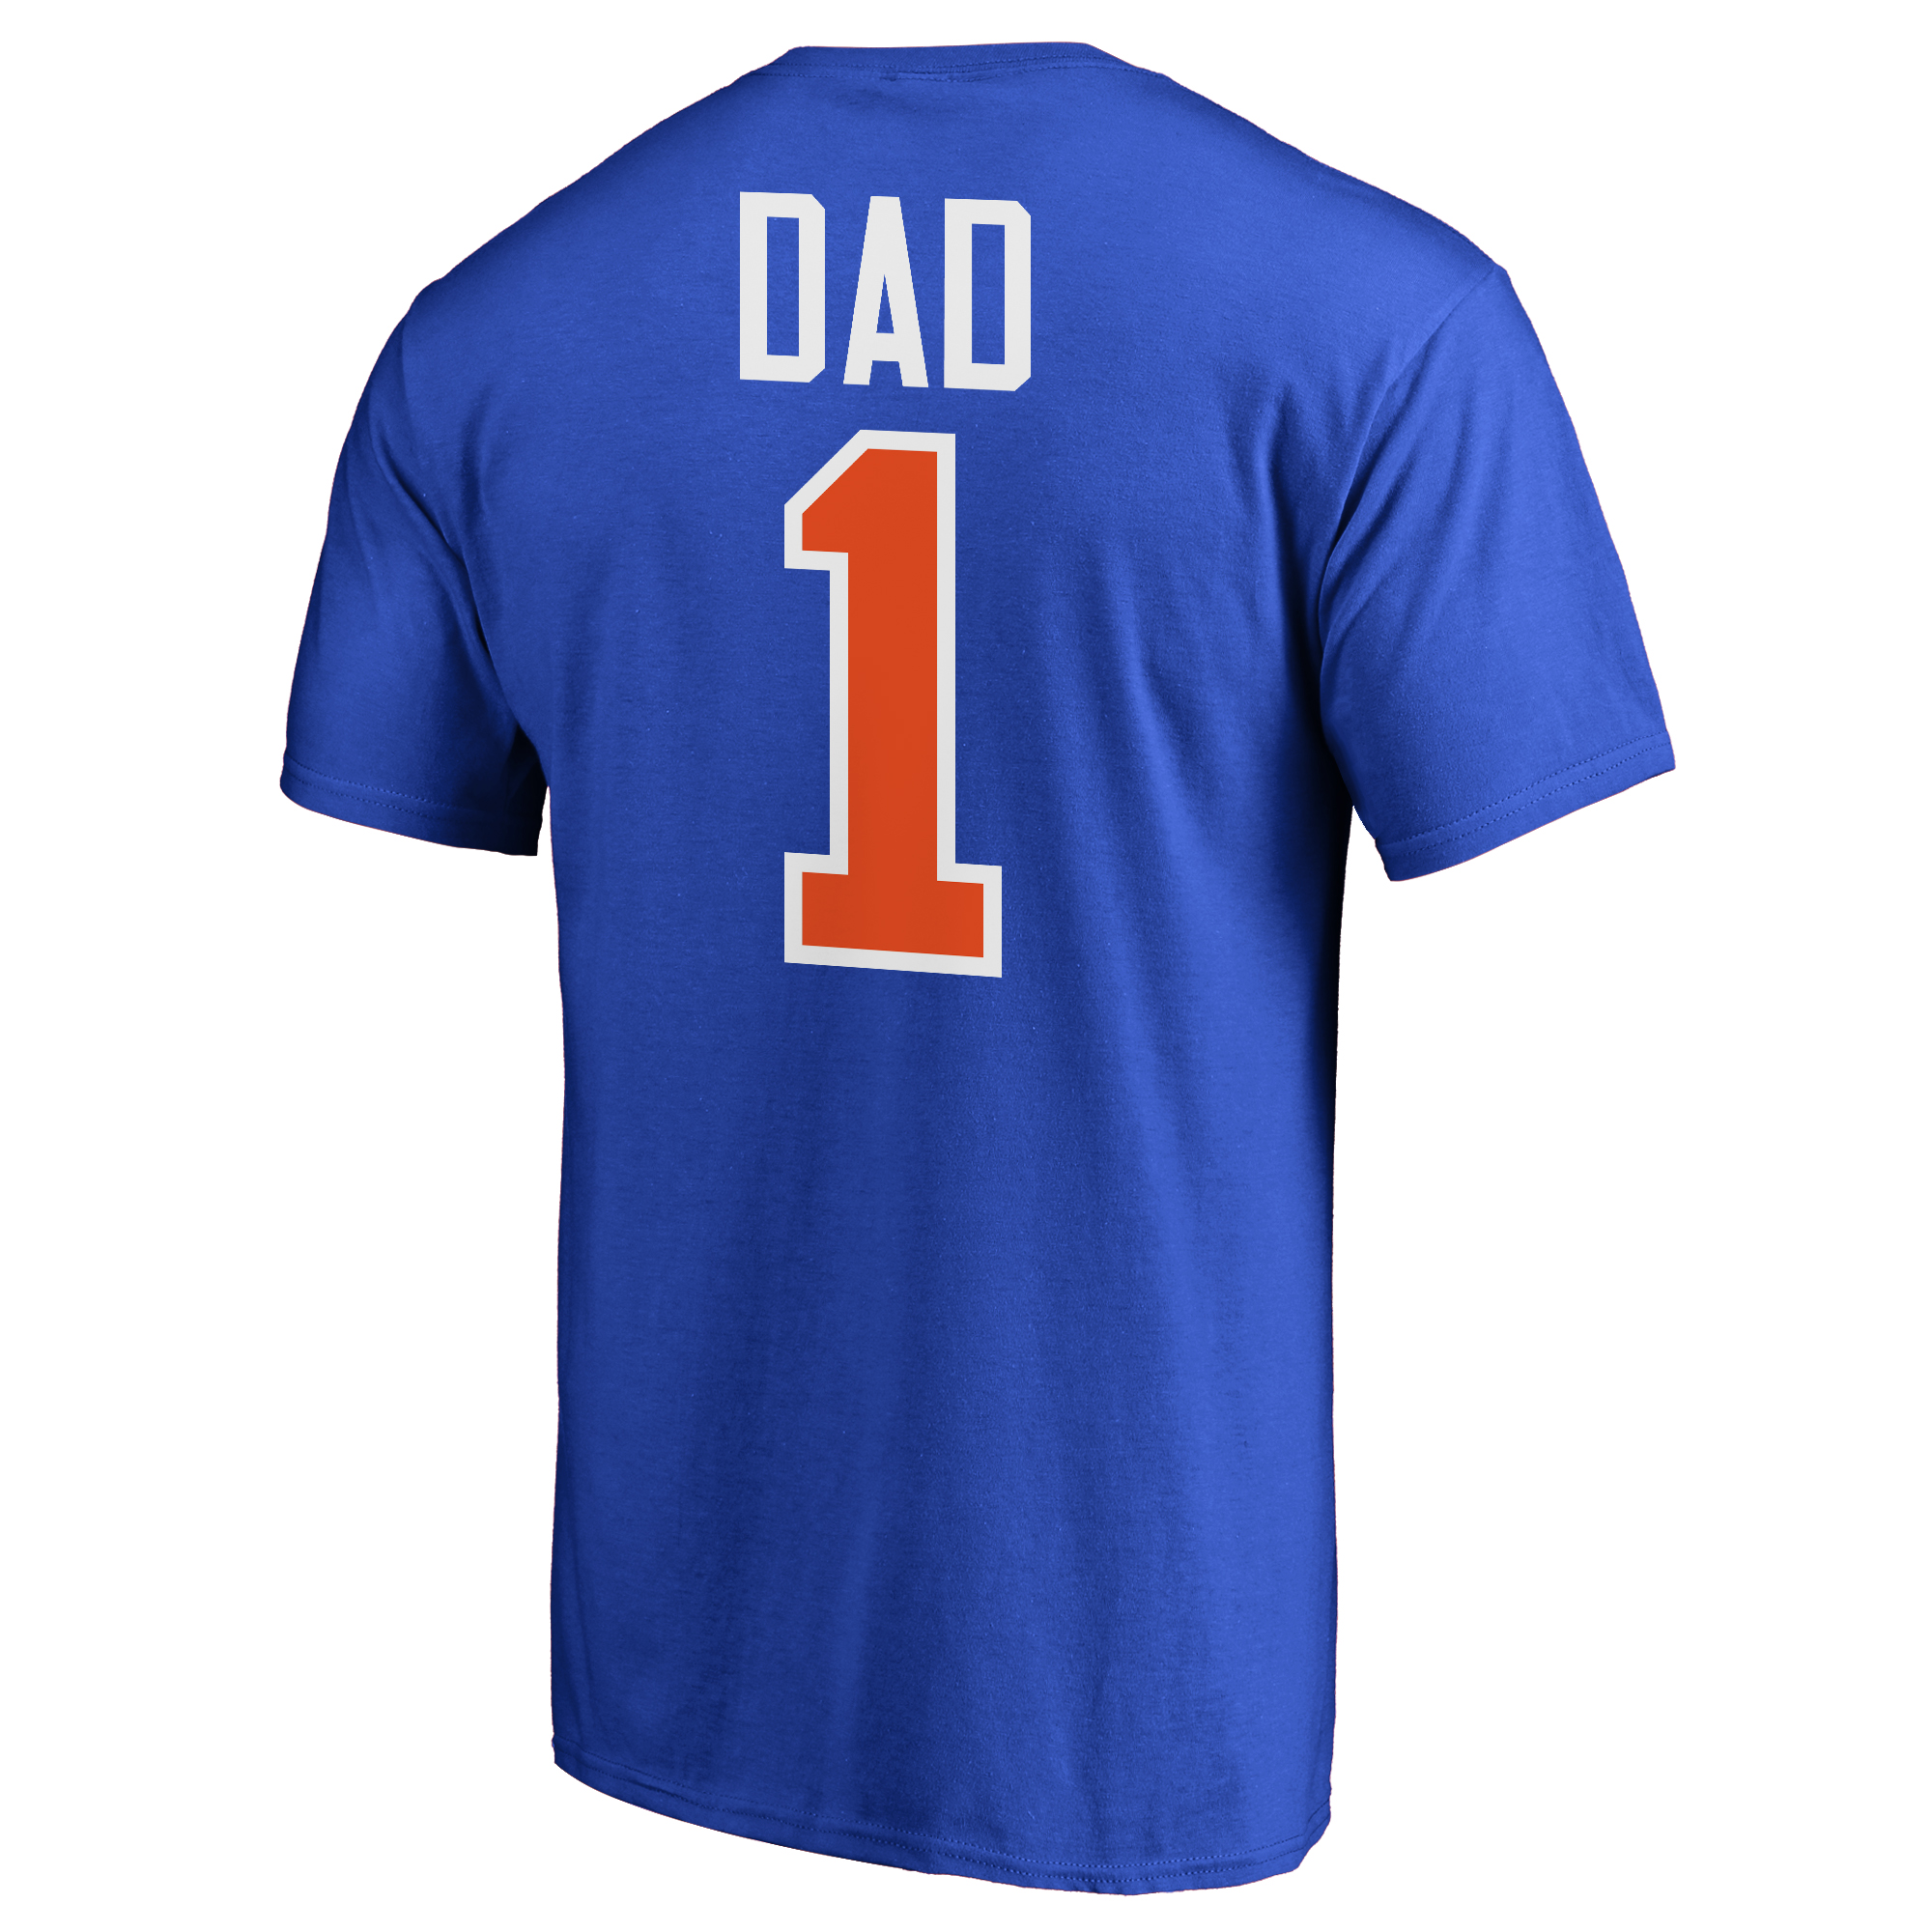 huge discount e2549 4dbfc New York Mets 2018 Father's Day Big & Tall #1 Dad T-Shirt - Royal